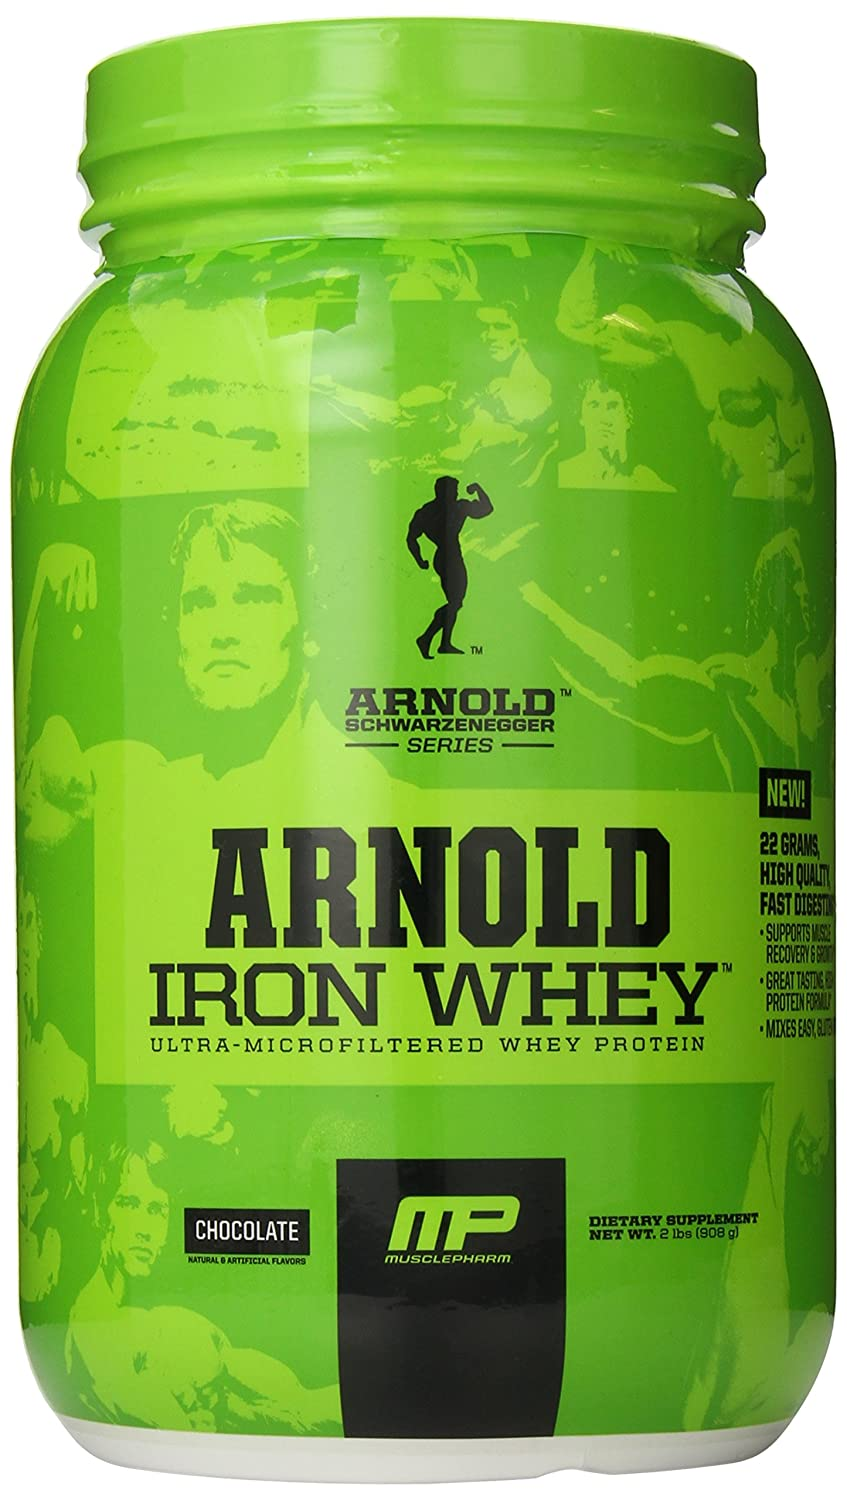 Arnold Series Iron Whey 2 lb (907g)